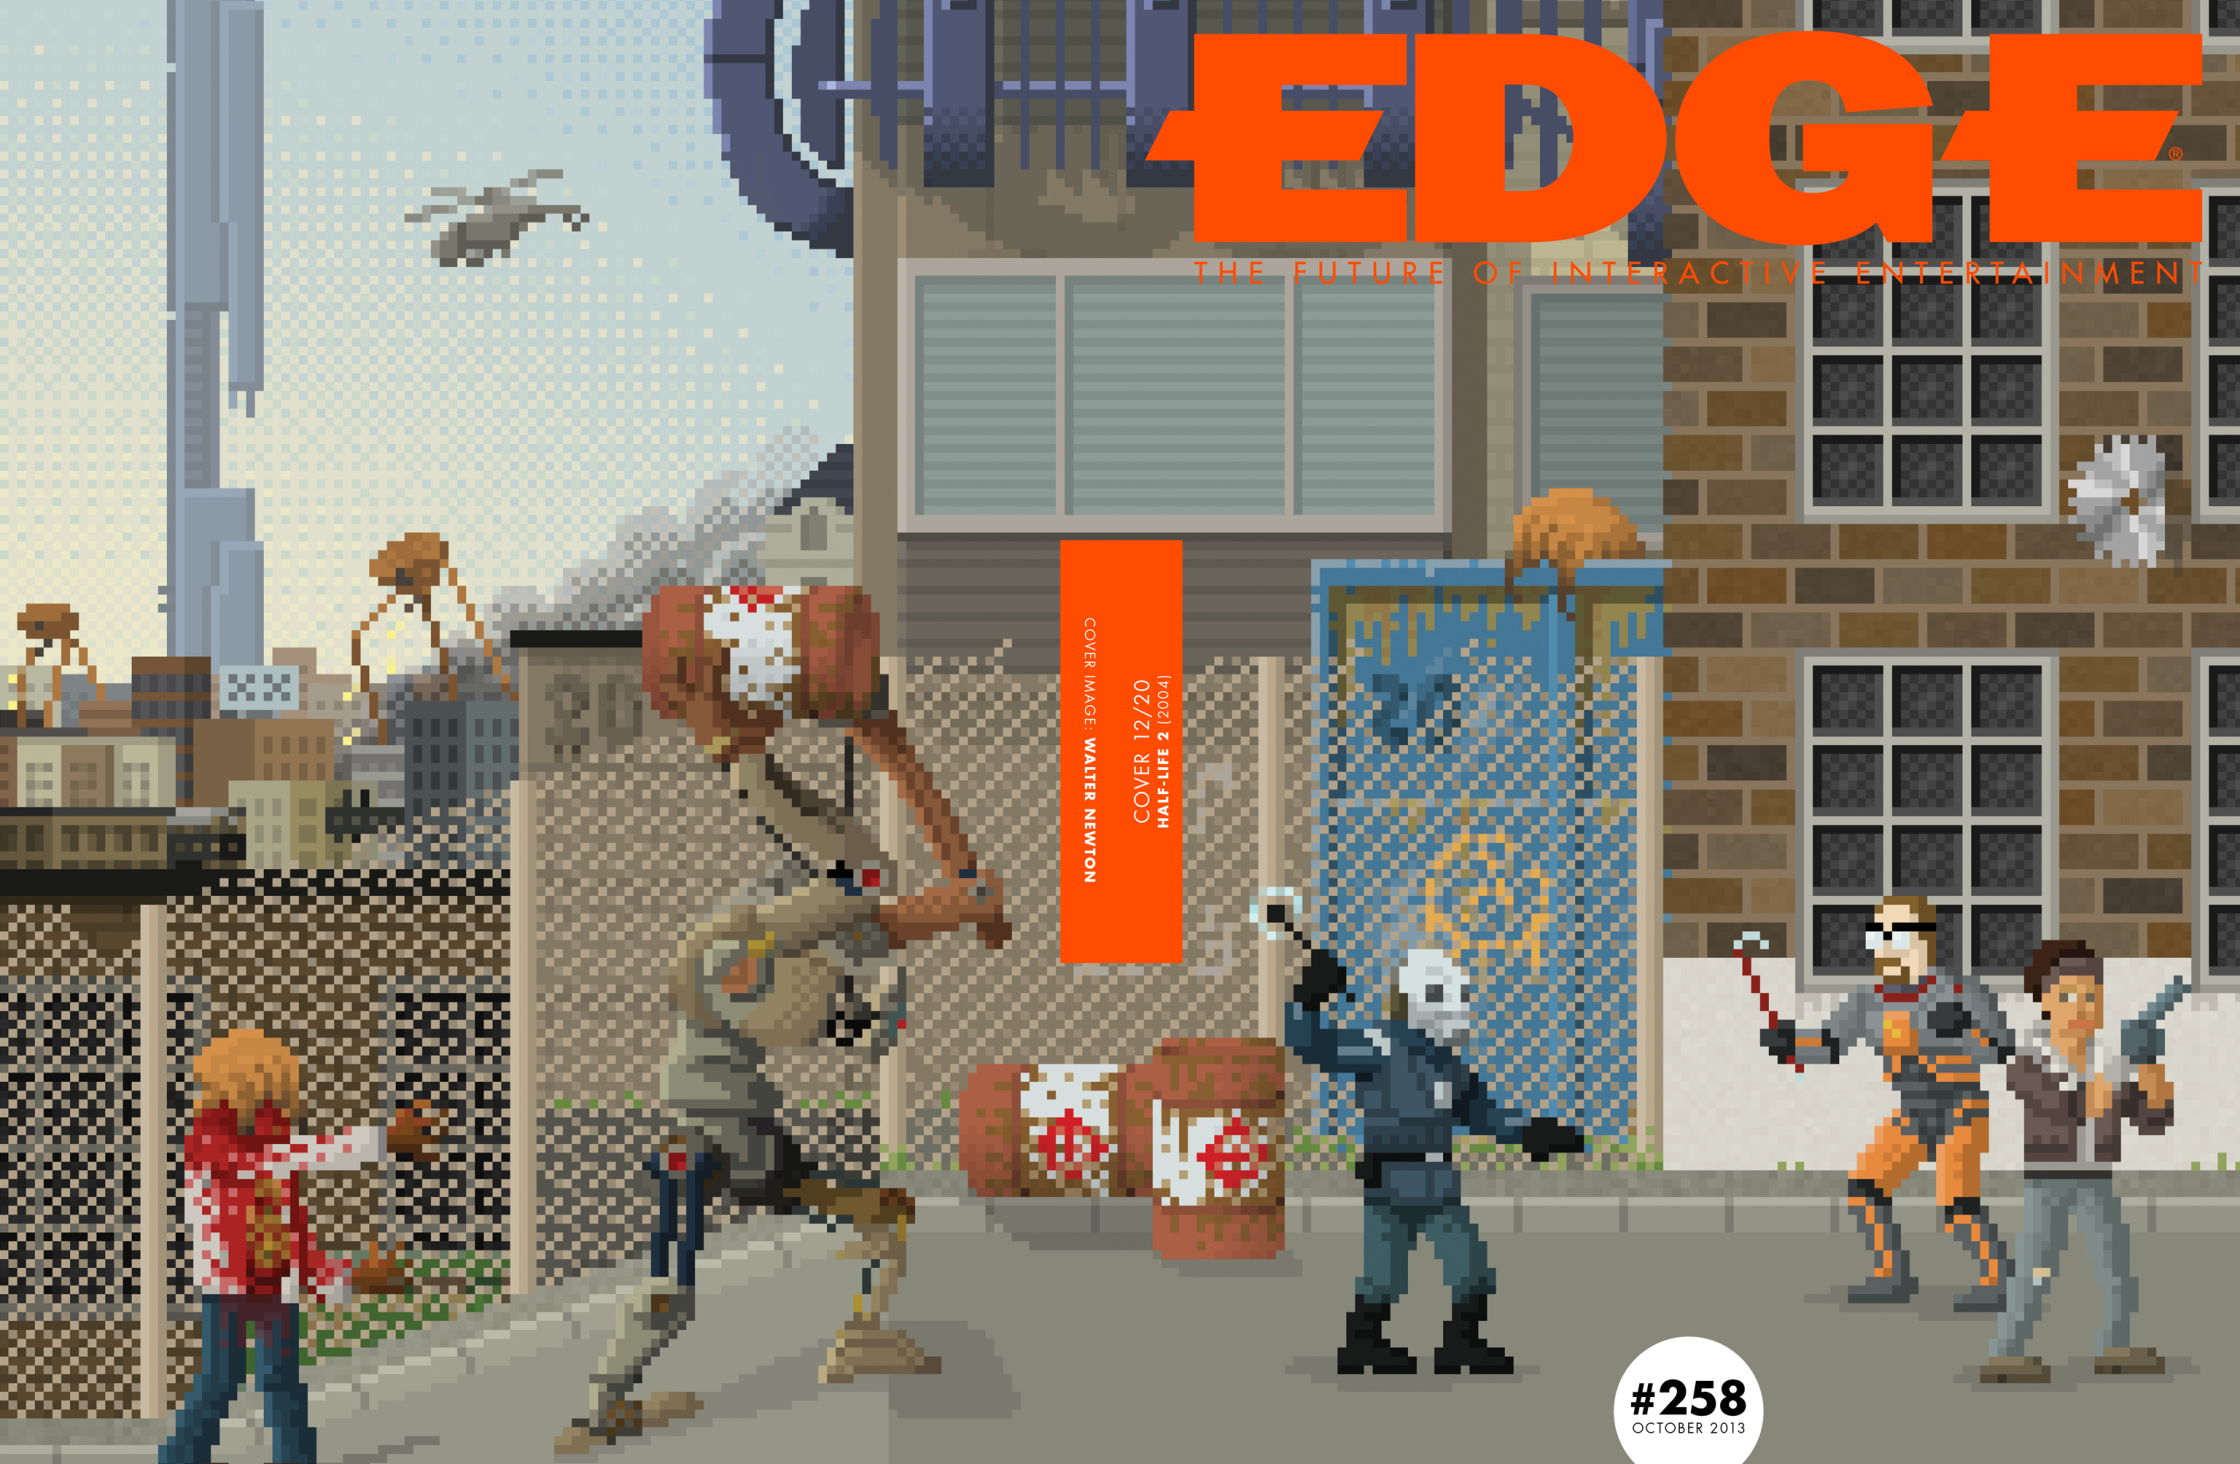 20th Anniversary Front Cover Half Life 2 / EDGE Magazine